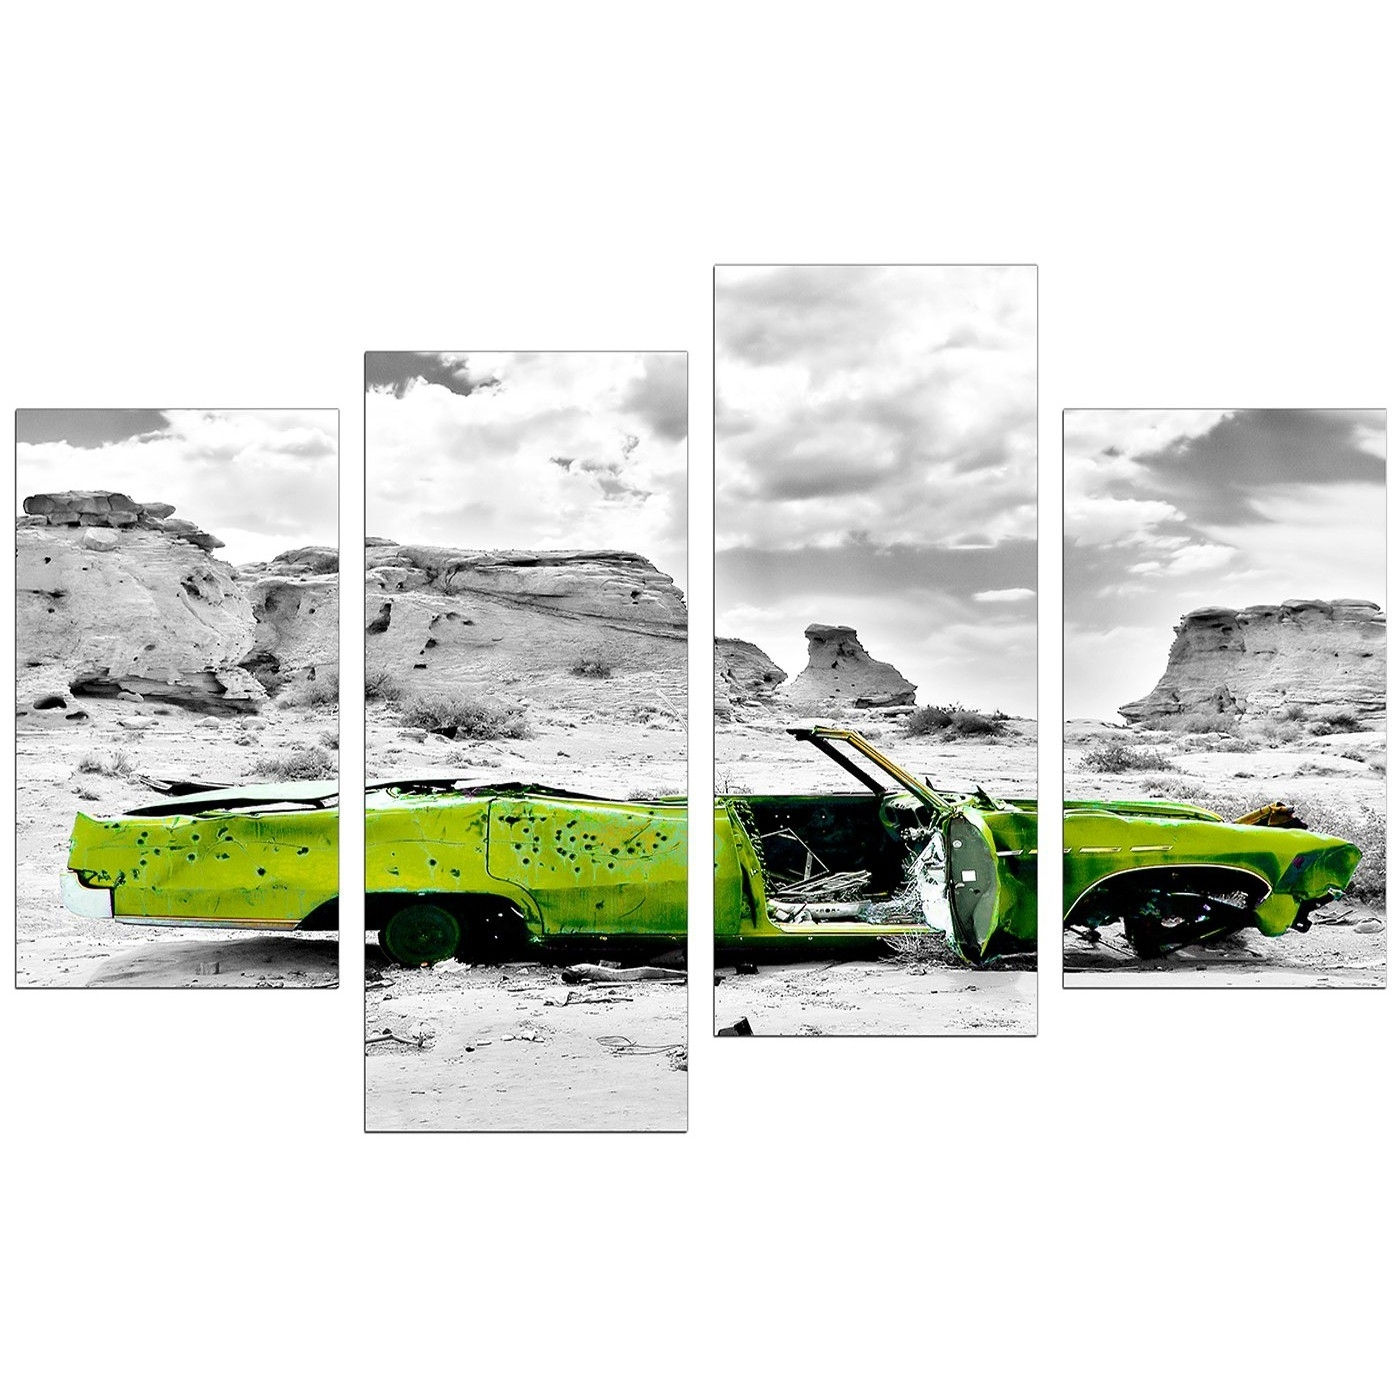 Most Popular Canvas Art Of Green Car In Black & White For Your Office With Regard To Large Green Wall Art (View 13 of 15)